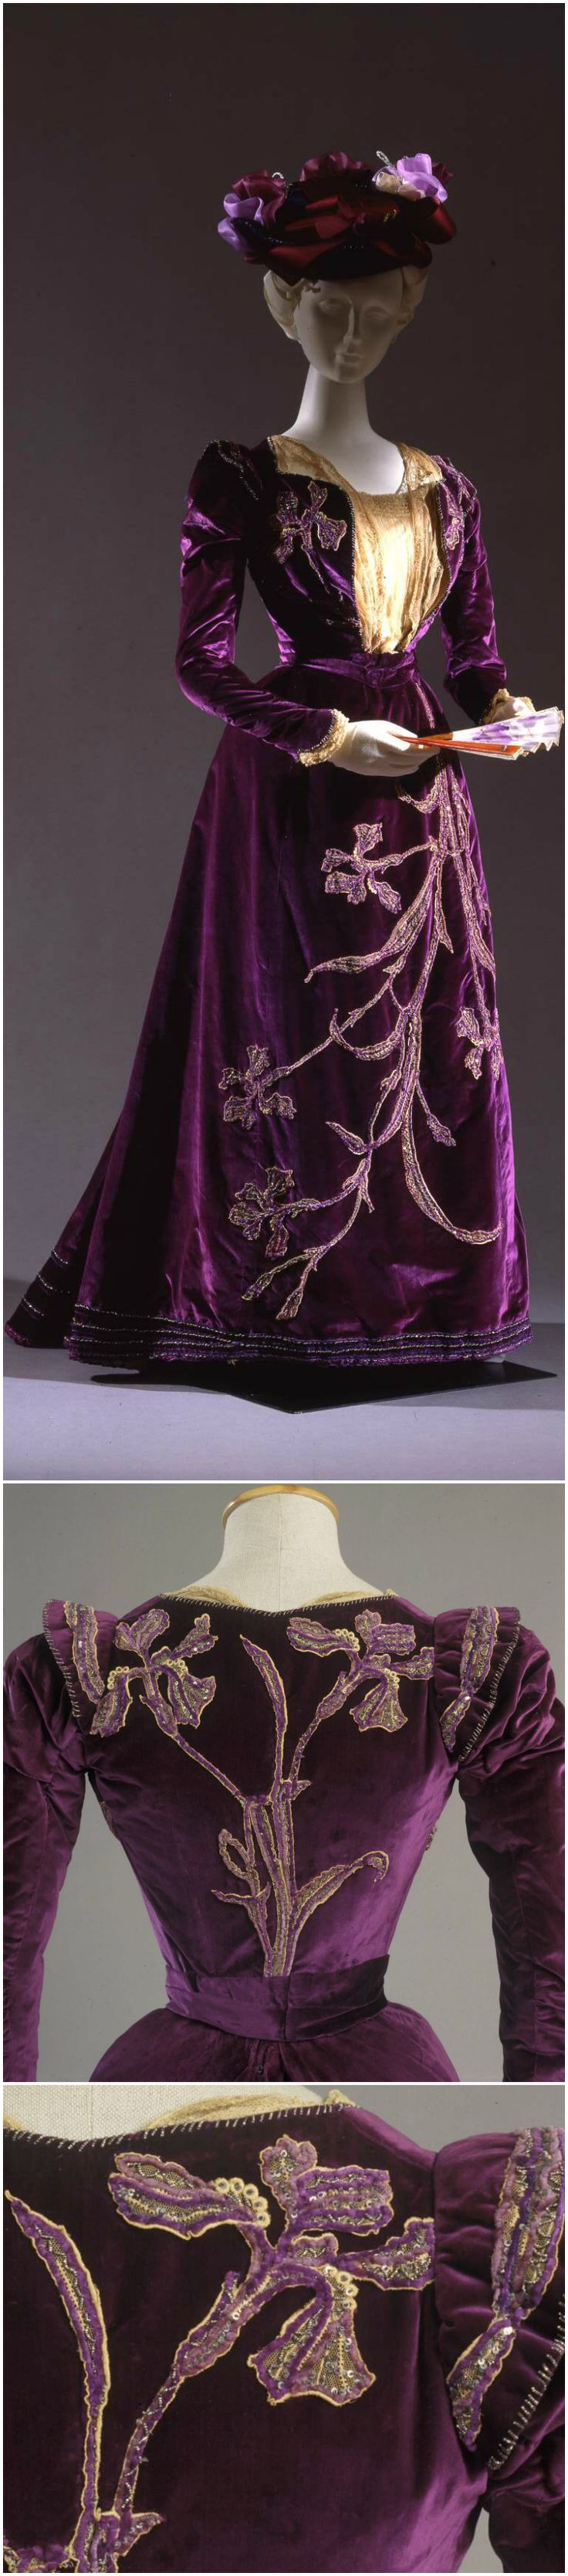 Two-piece walking dress, by Sartoria B. Pontecorvo, Rome, beginning of the 20th century (before 1906), at the Pitti Palace Costume Gallery. Via Europeana Fashion.